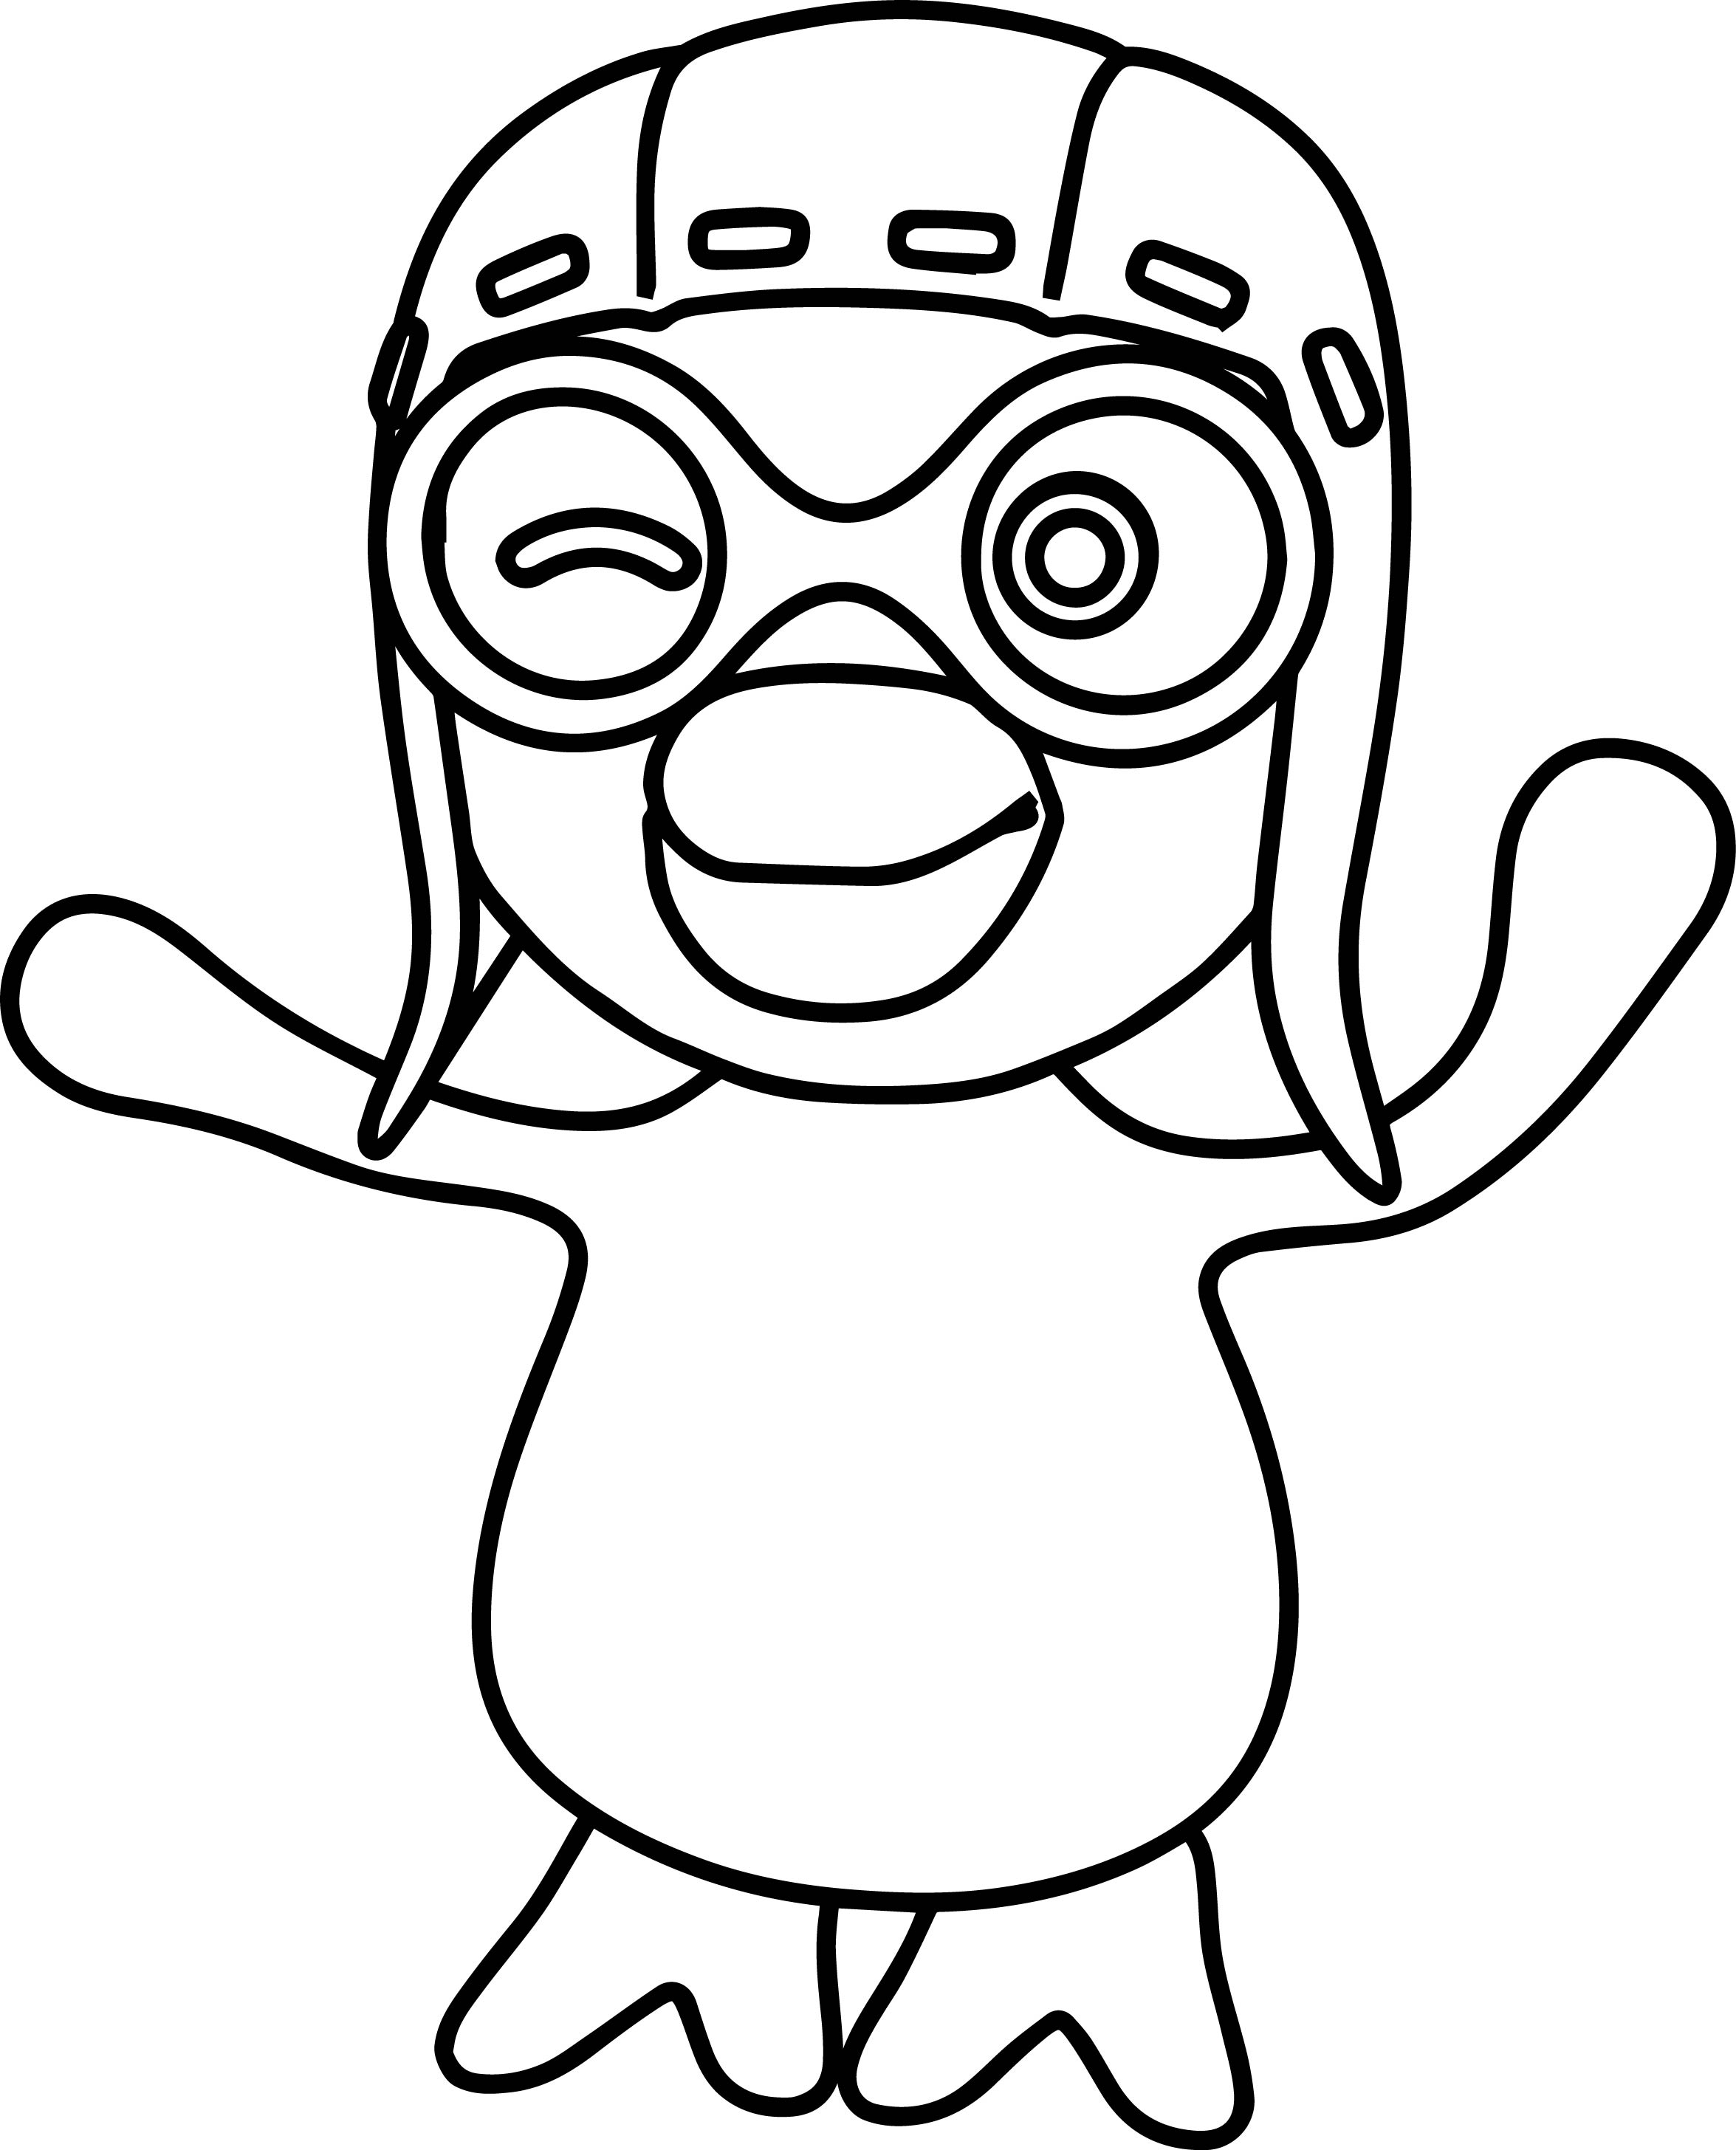 bold line coloring pages | Pororo Coloring Pages | Wecoloringpage.com